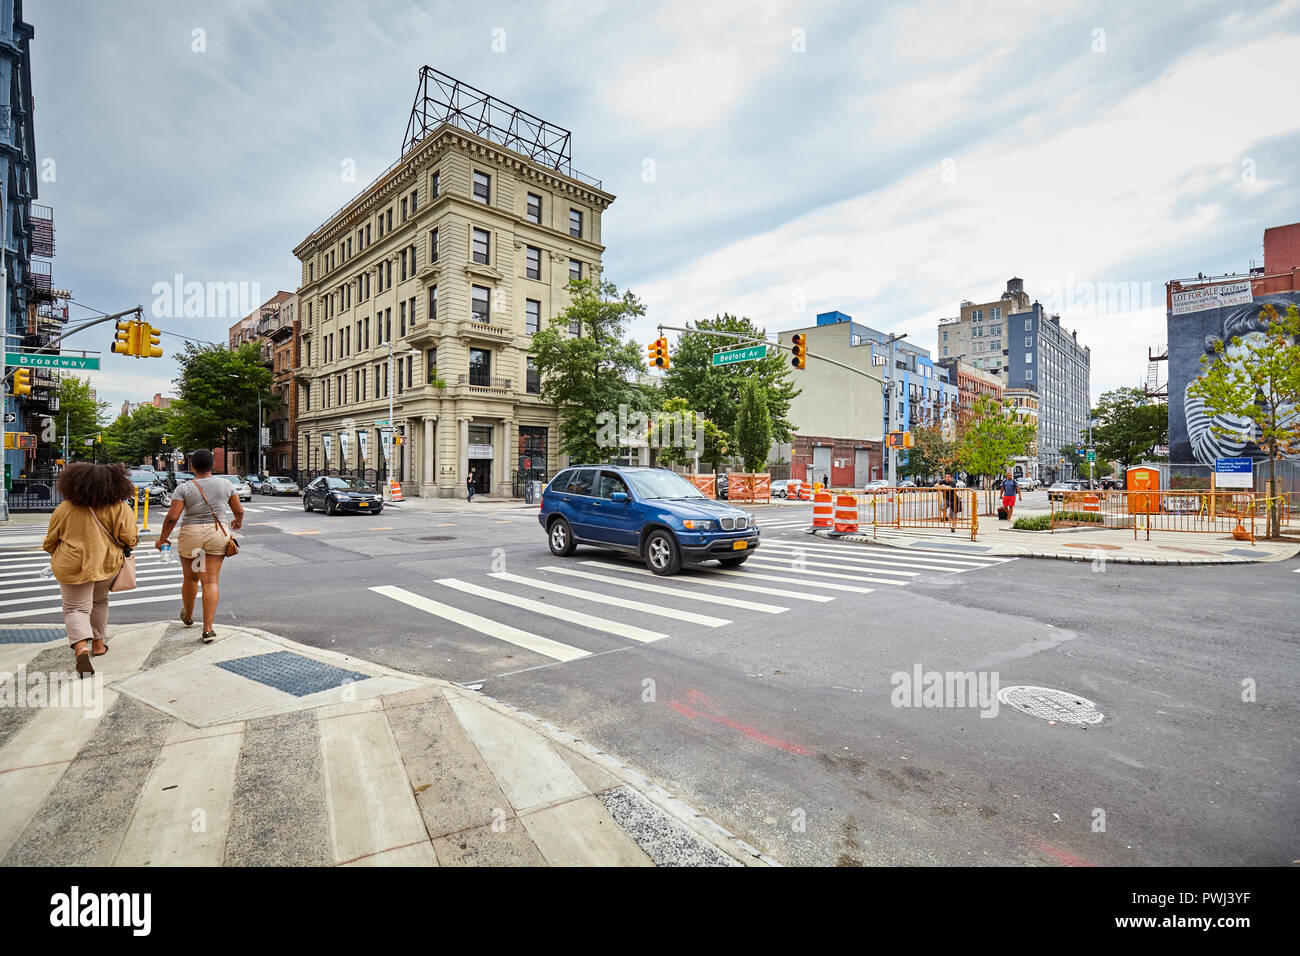 New York City, USA - July 06, 2018: Bedford Avenue in Williamsburg, one of Brooklyn boroughs. - Stock Image